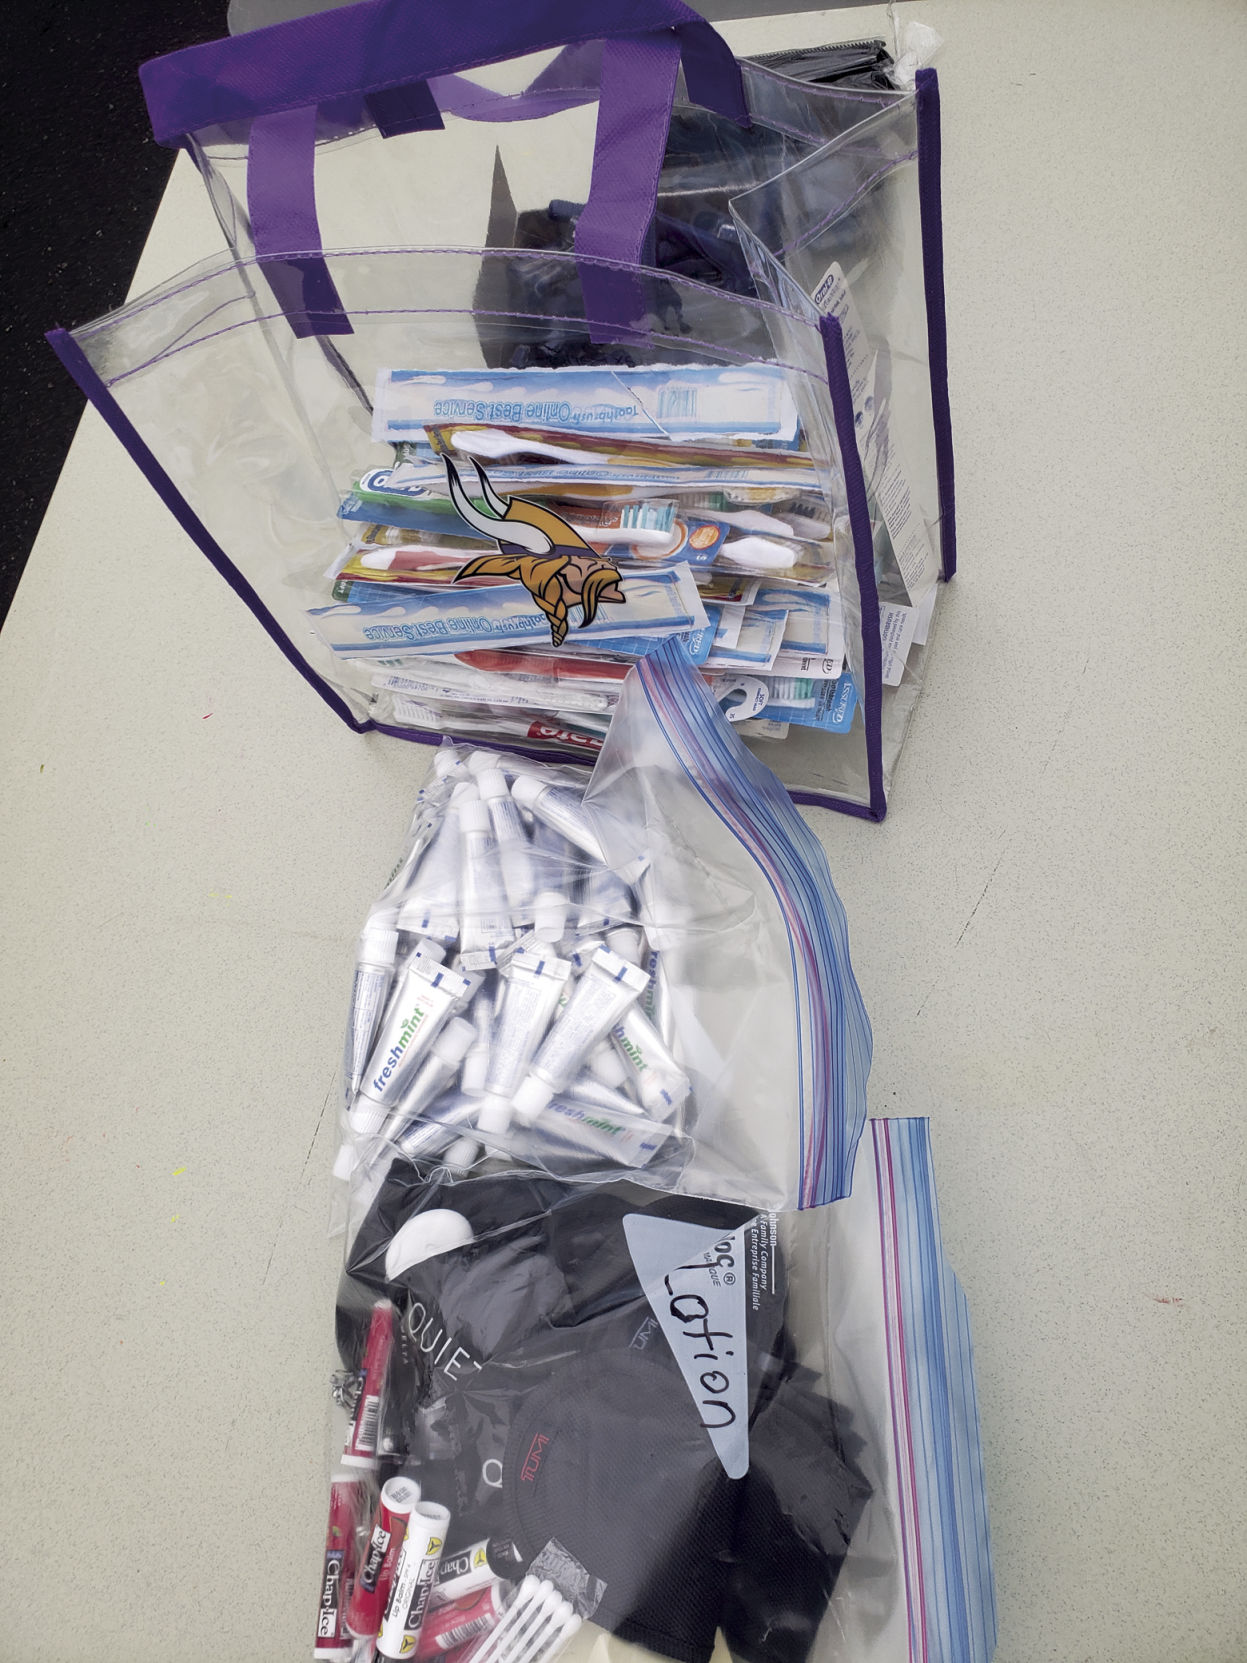 Maple Grove resident packs care kits for the homeless in his driveway